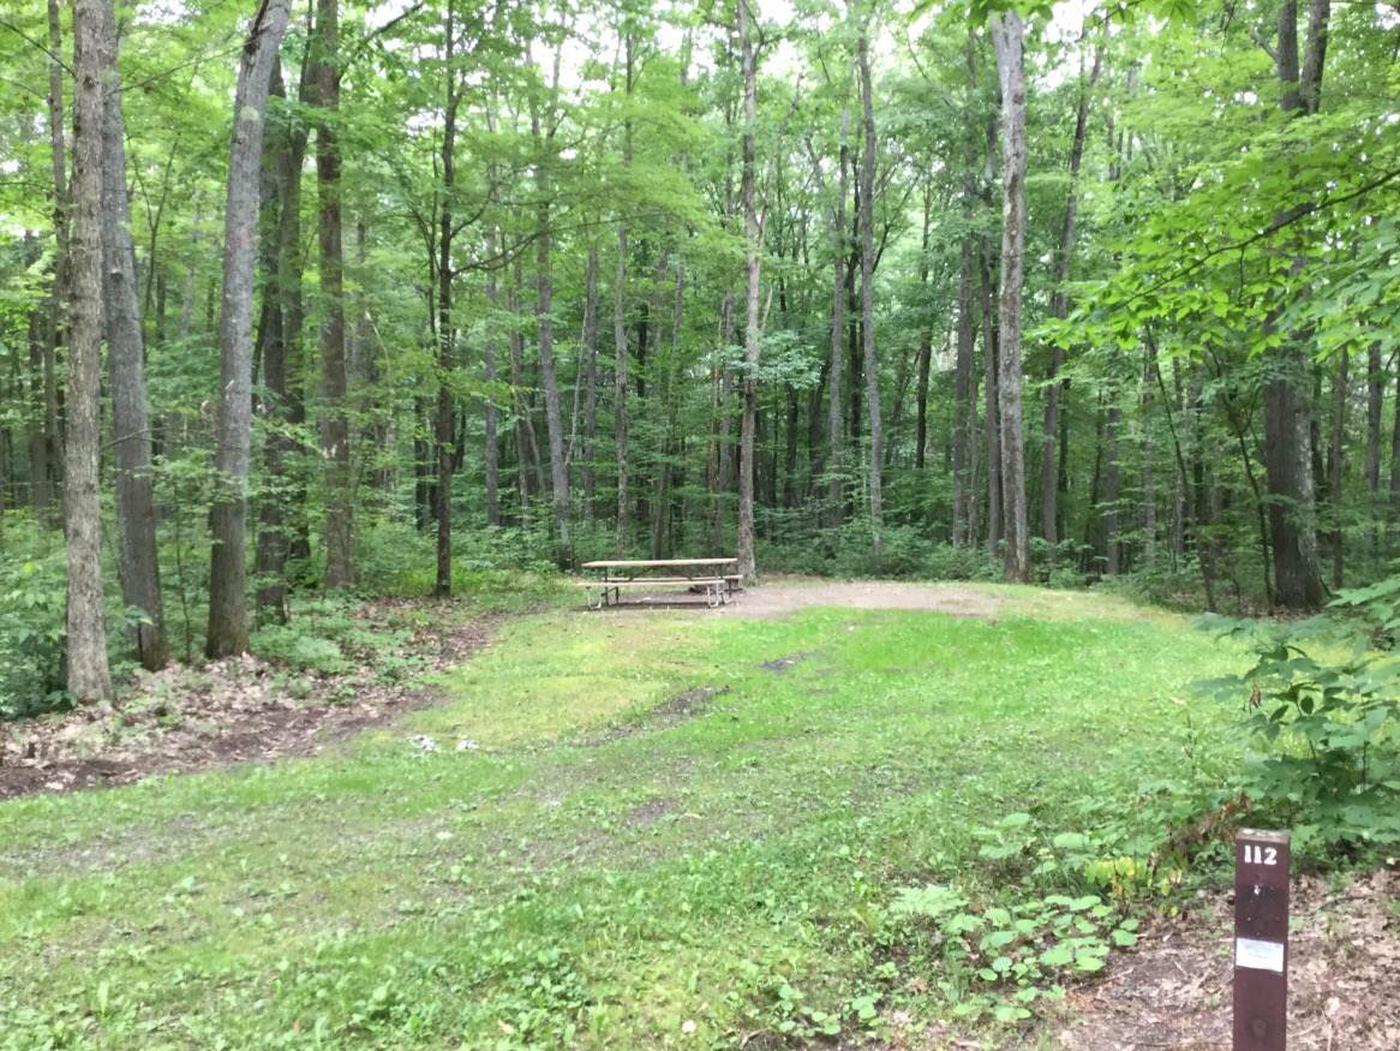 Tracy Ridge Recreation Area: Campsite 112